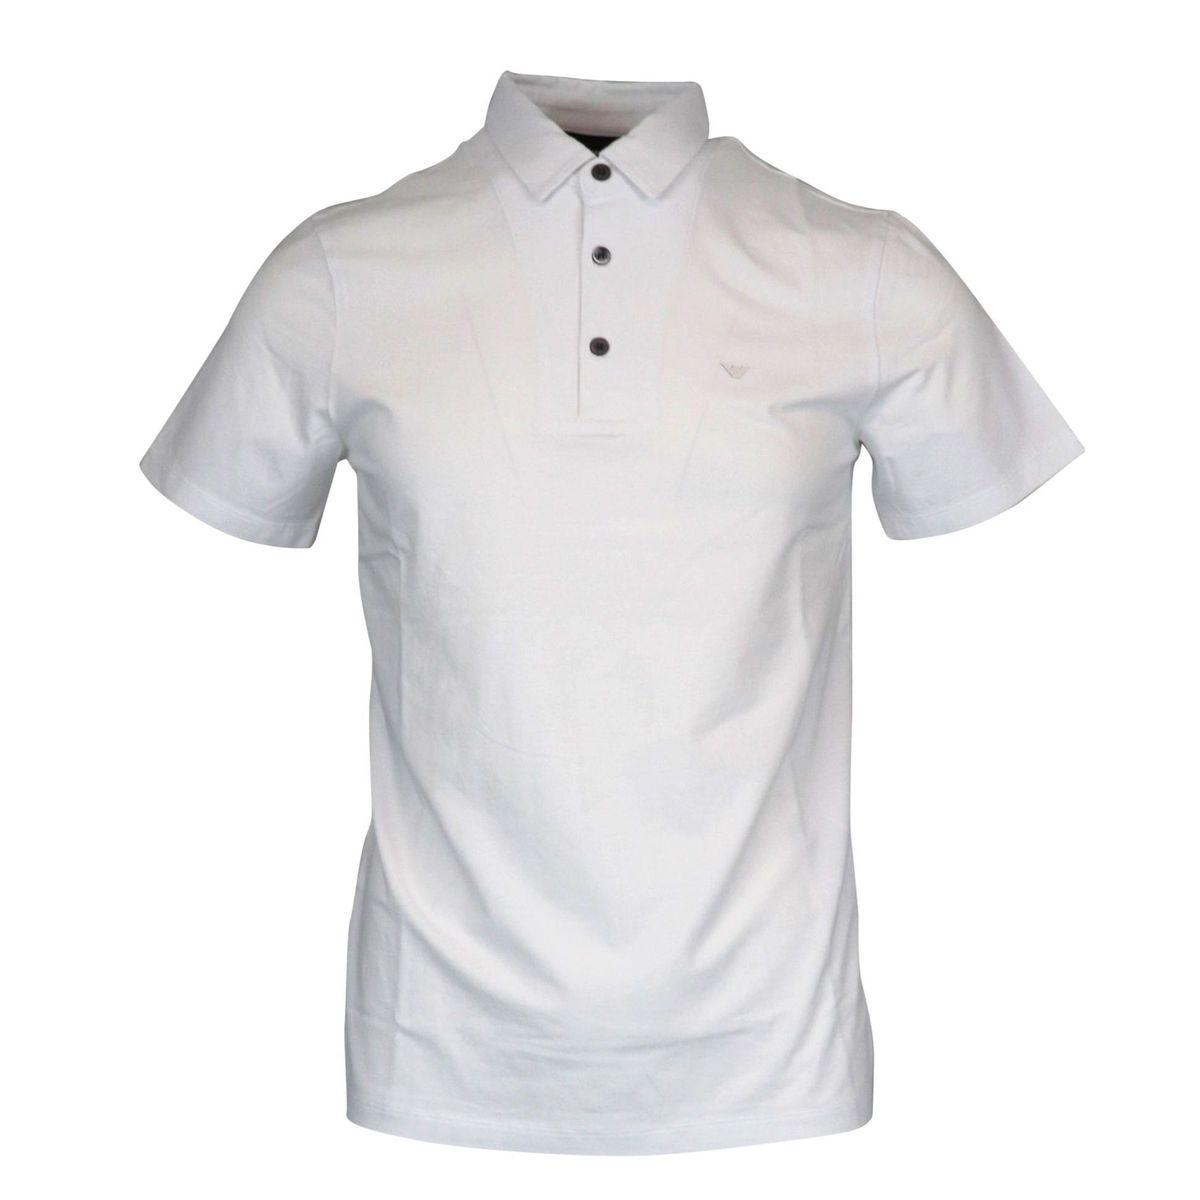 Three button stretch cotton polo shirt with logo White Emporio Armani